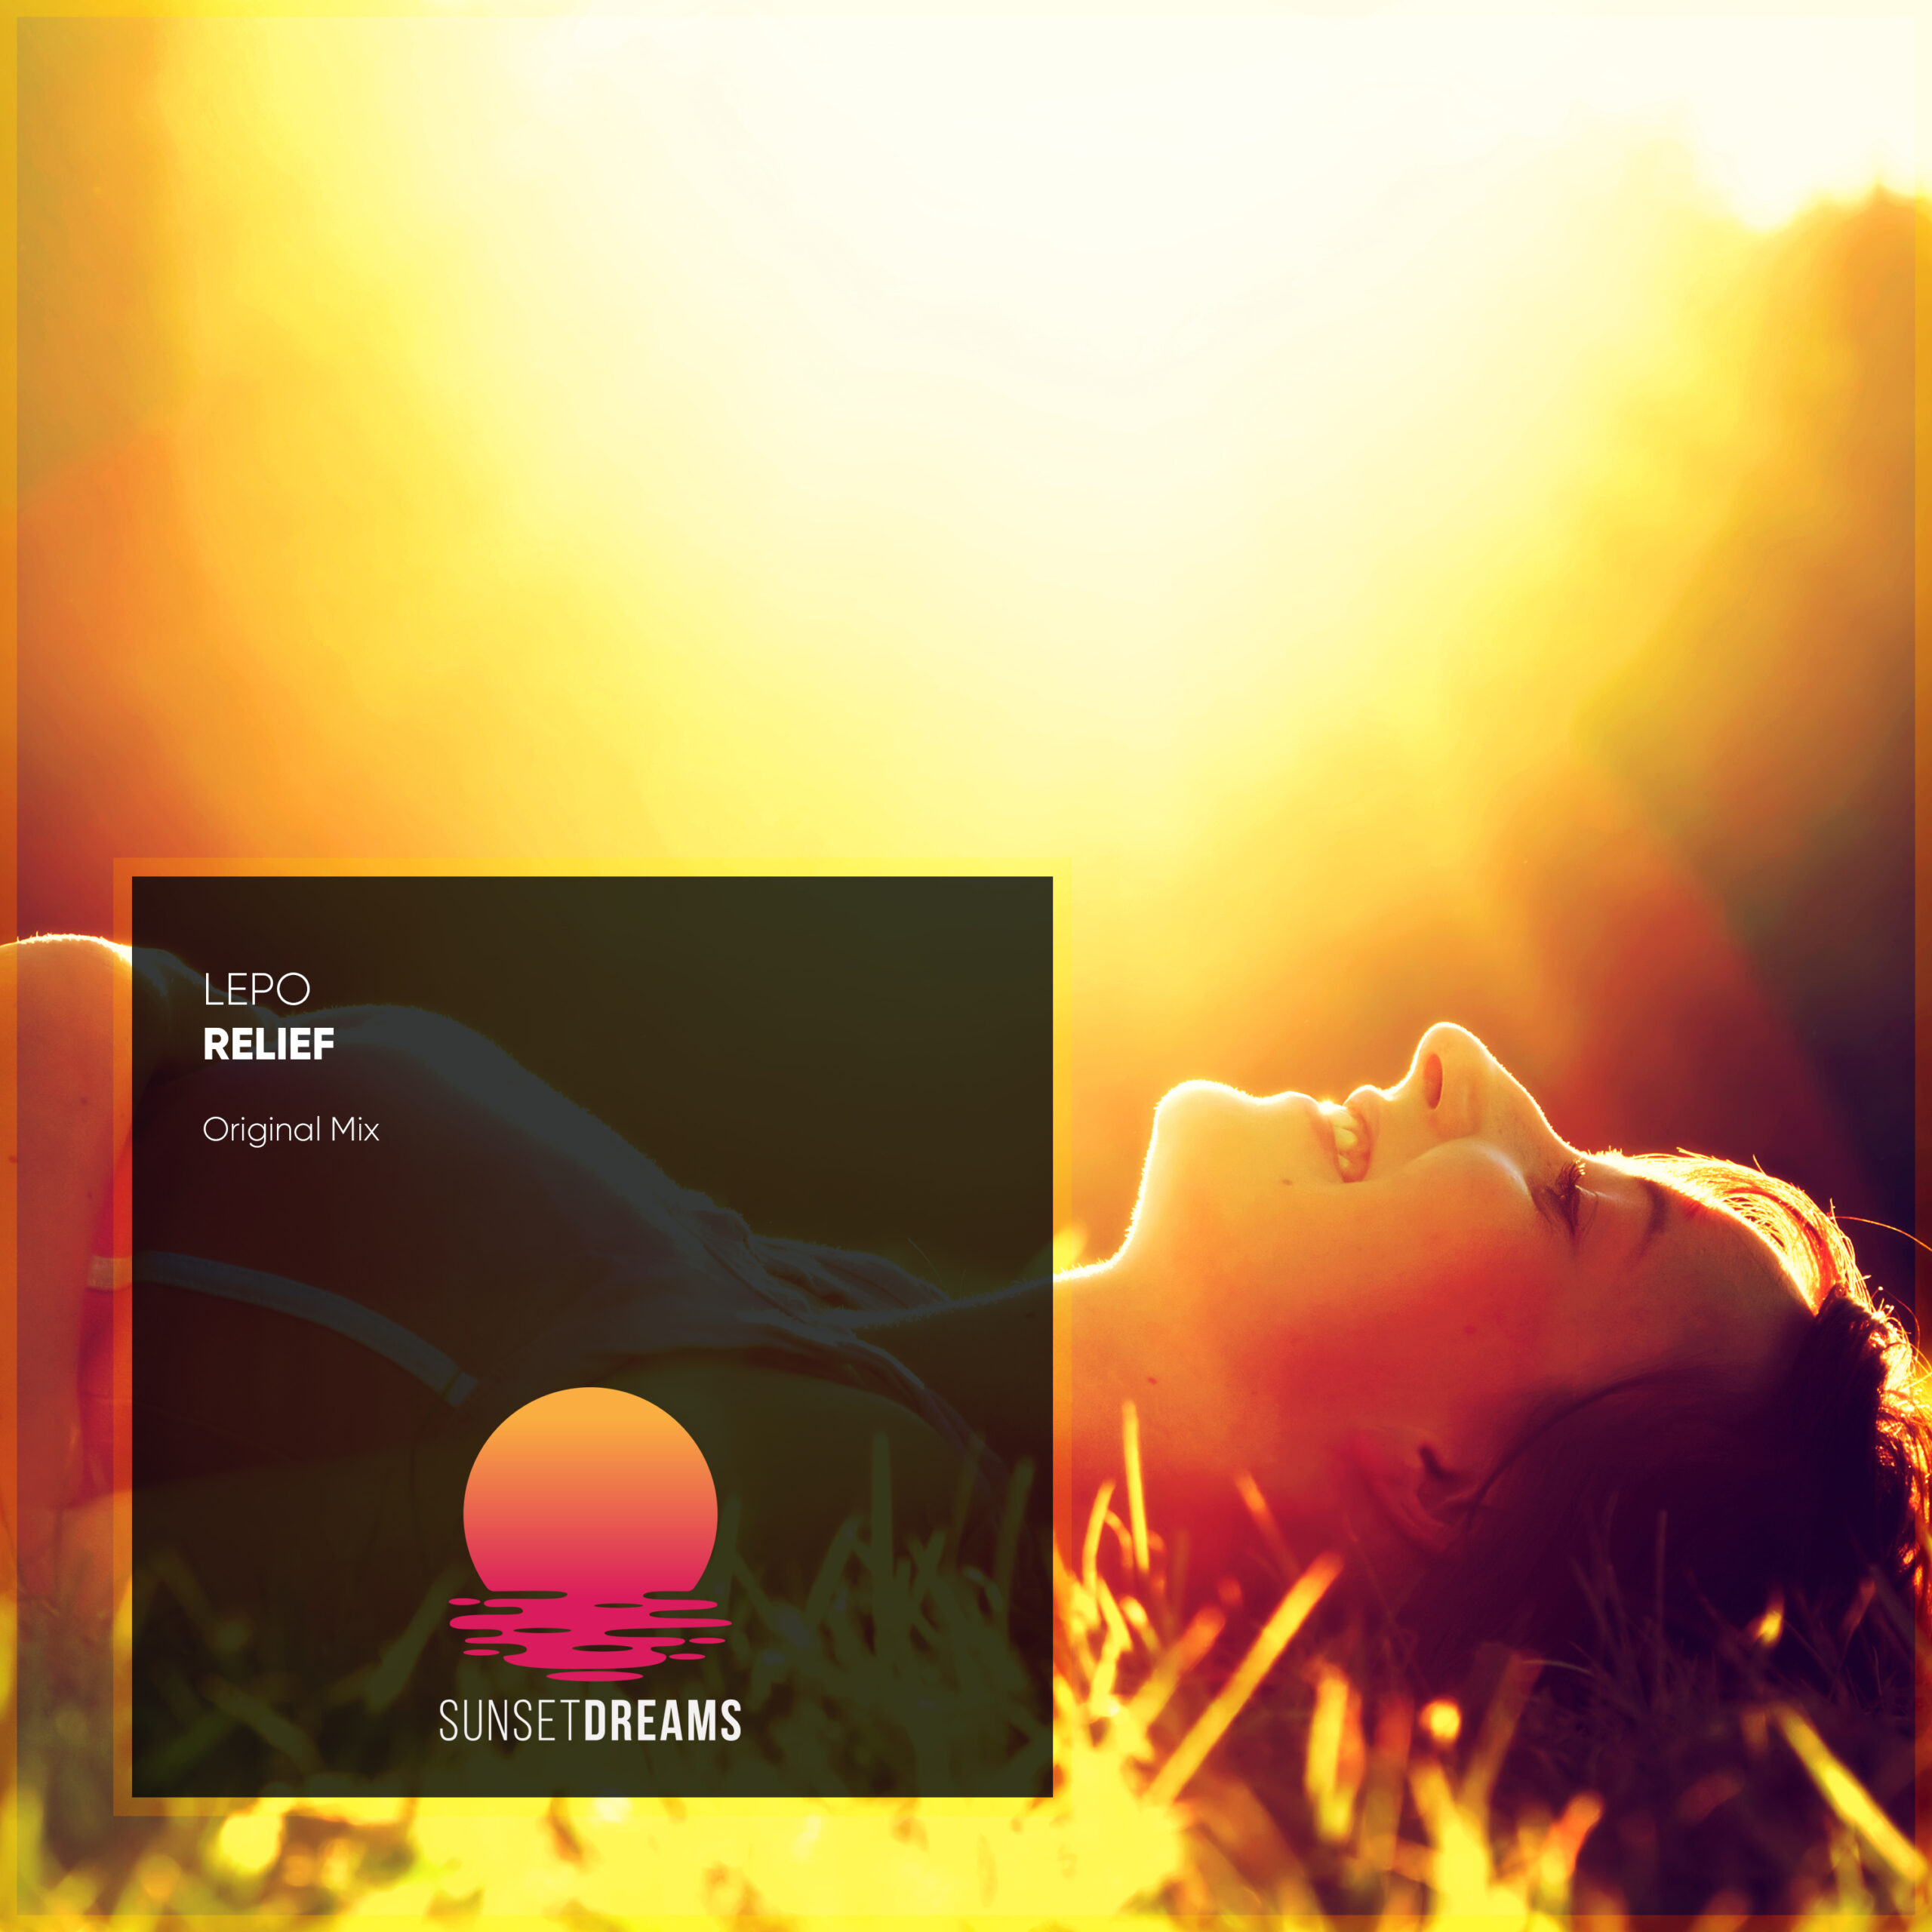 Lepo's new release on Sunset Dreams